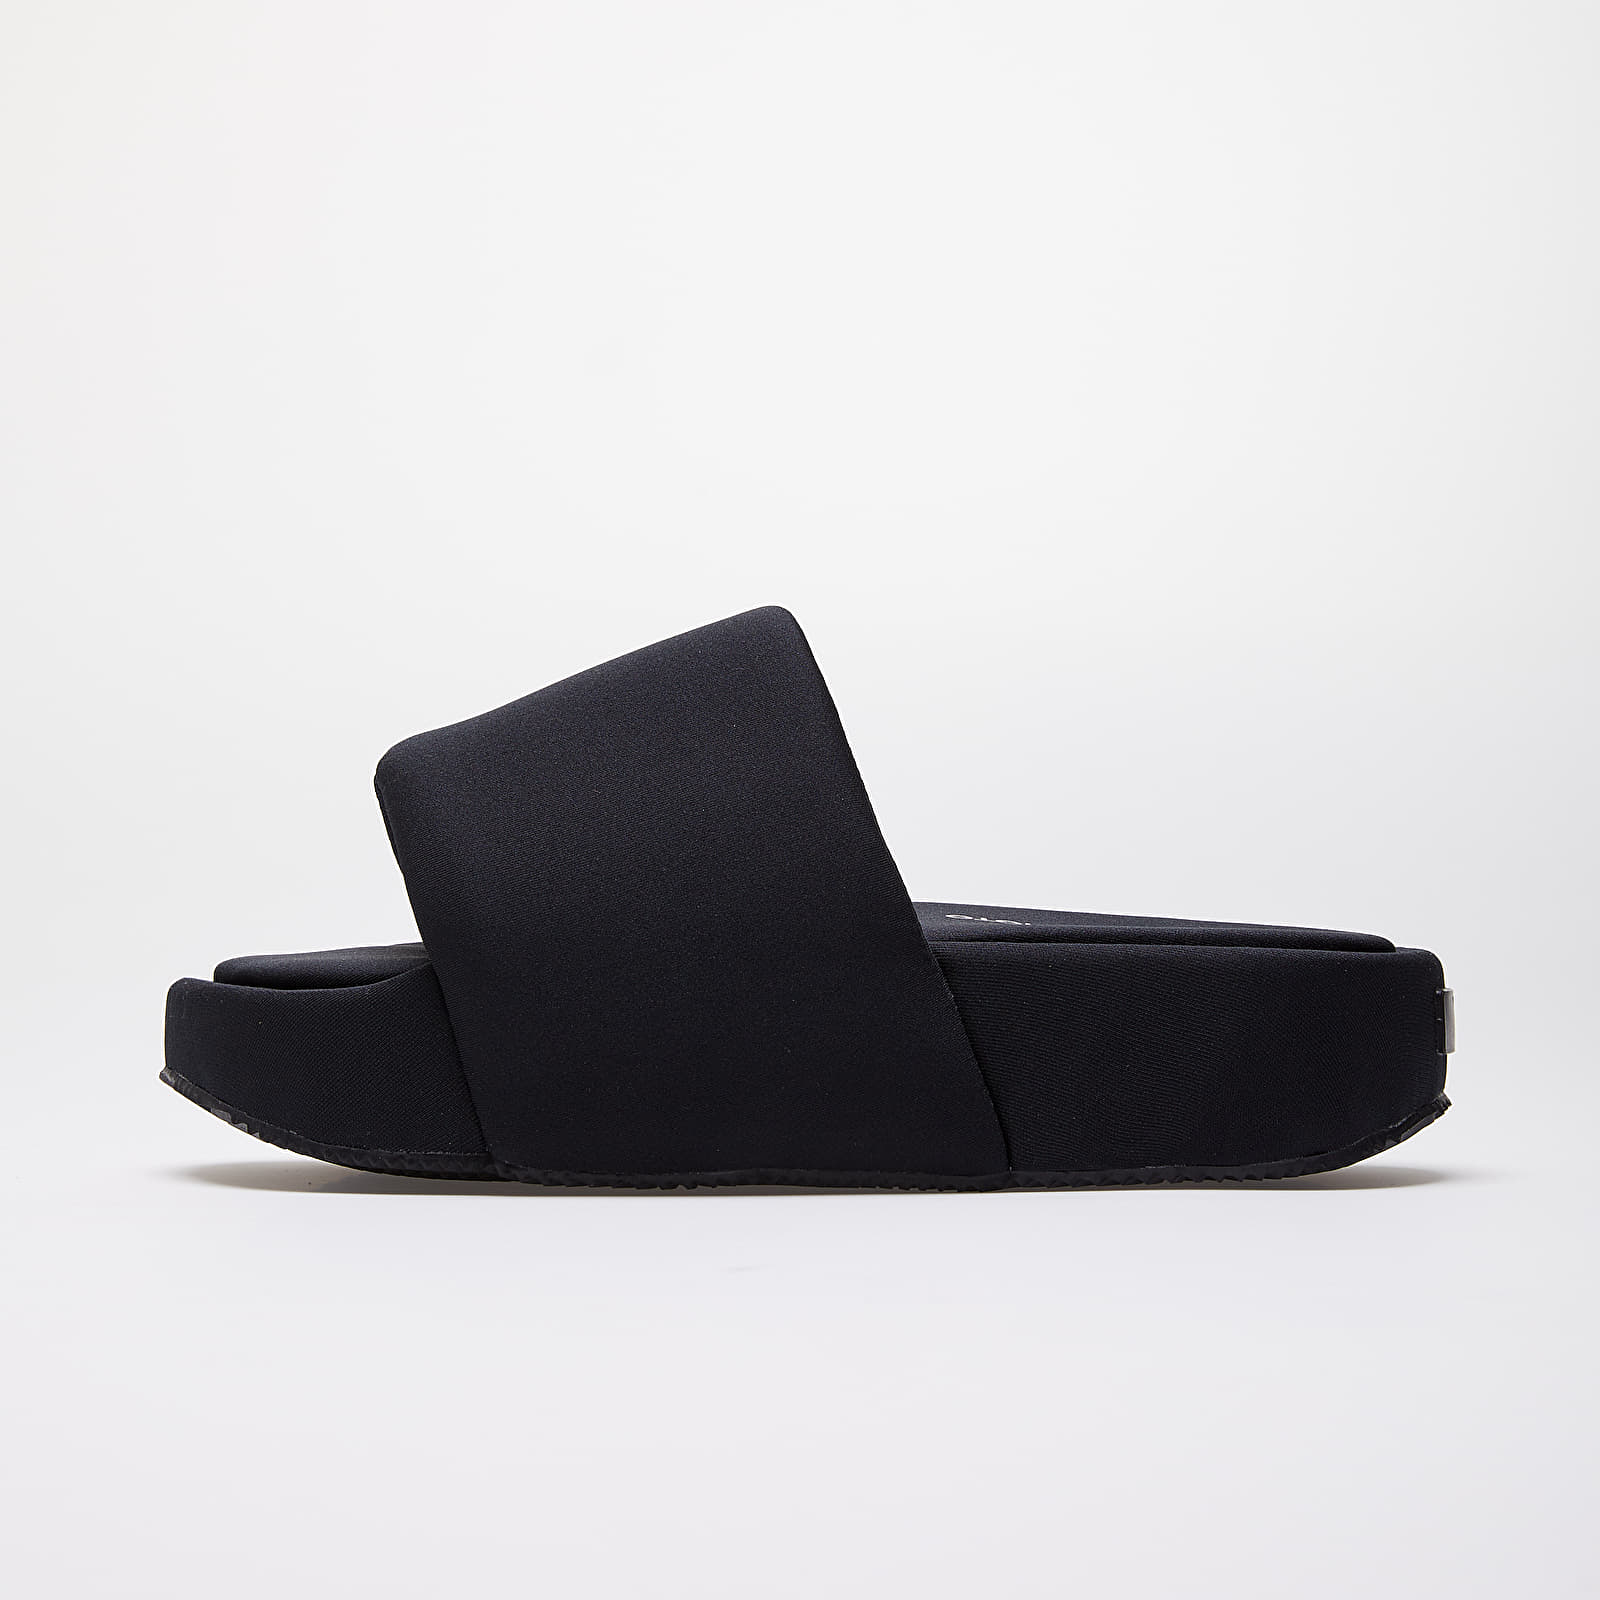 Y 3 Slide Black Black Black | Footshop